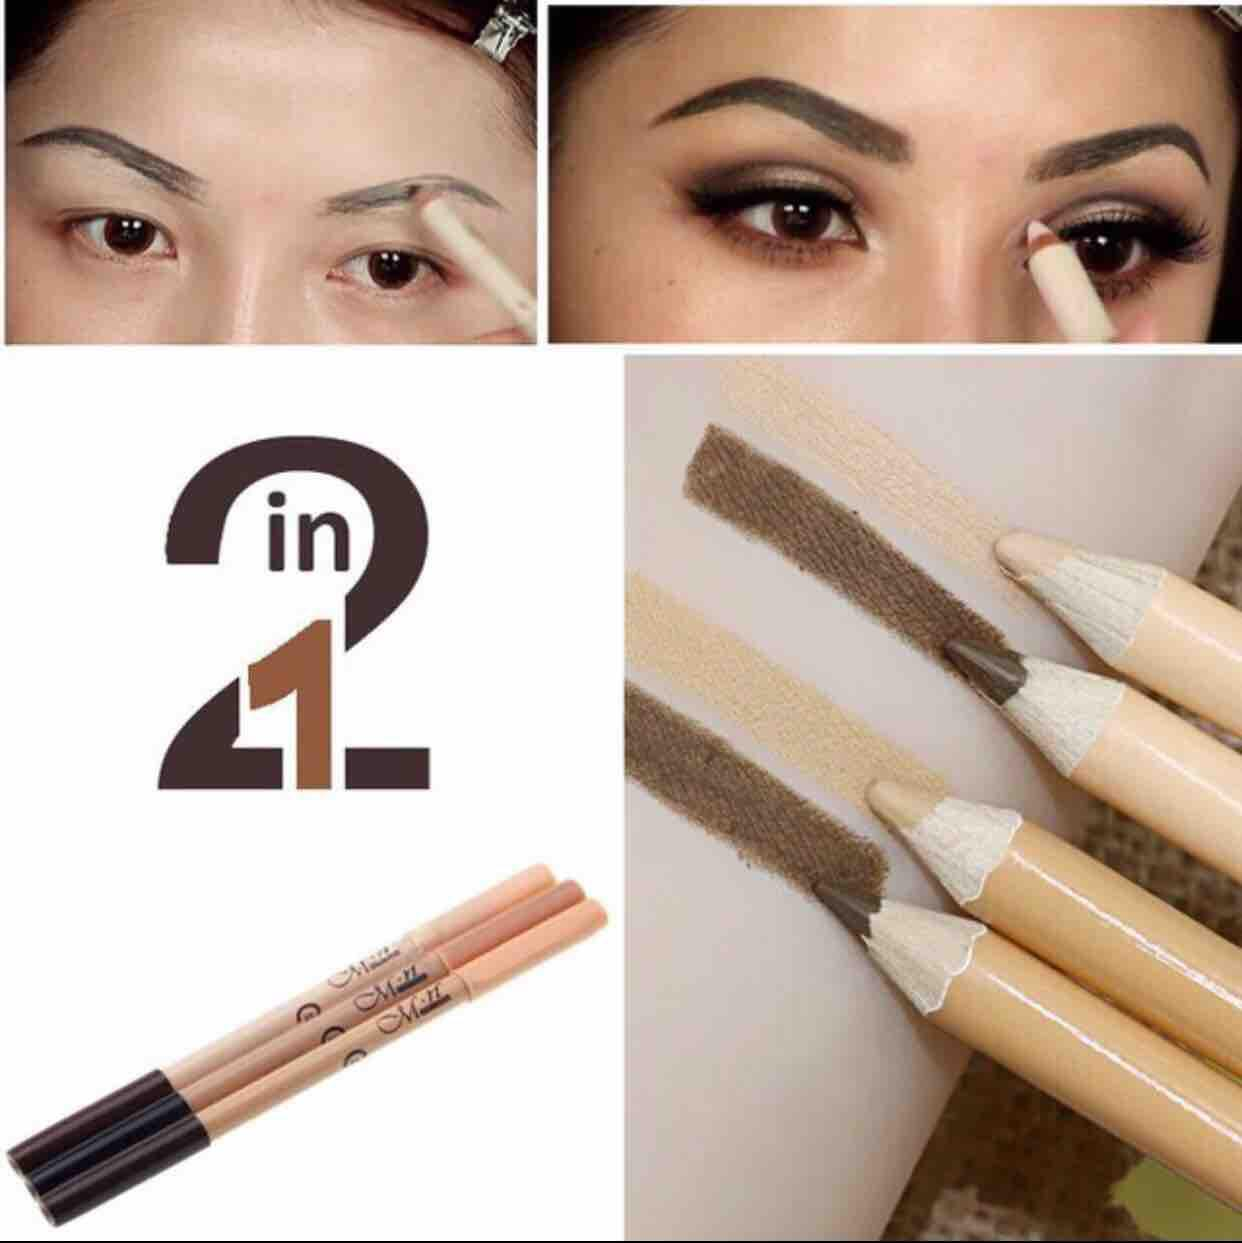 2 in 1 eyebrow and concealer pencil. Philippines